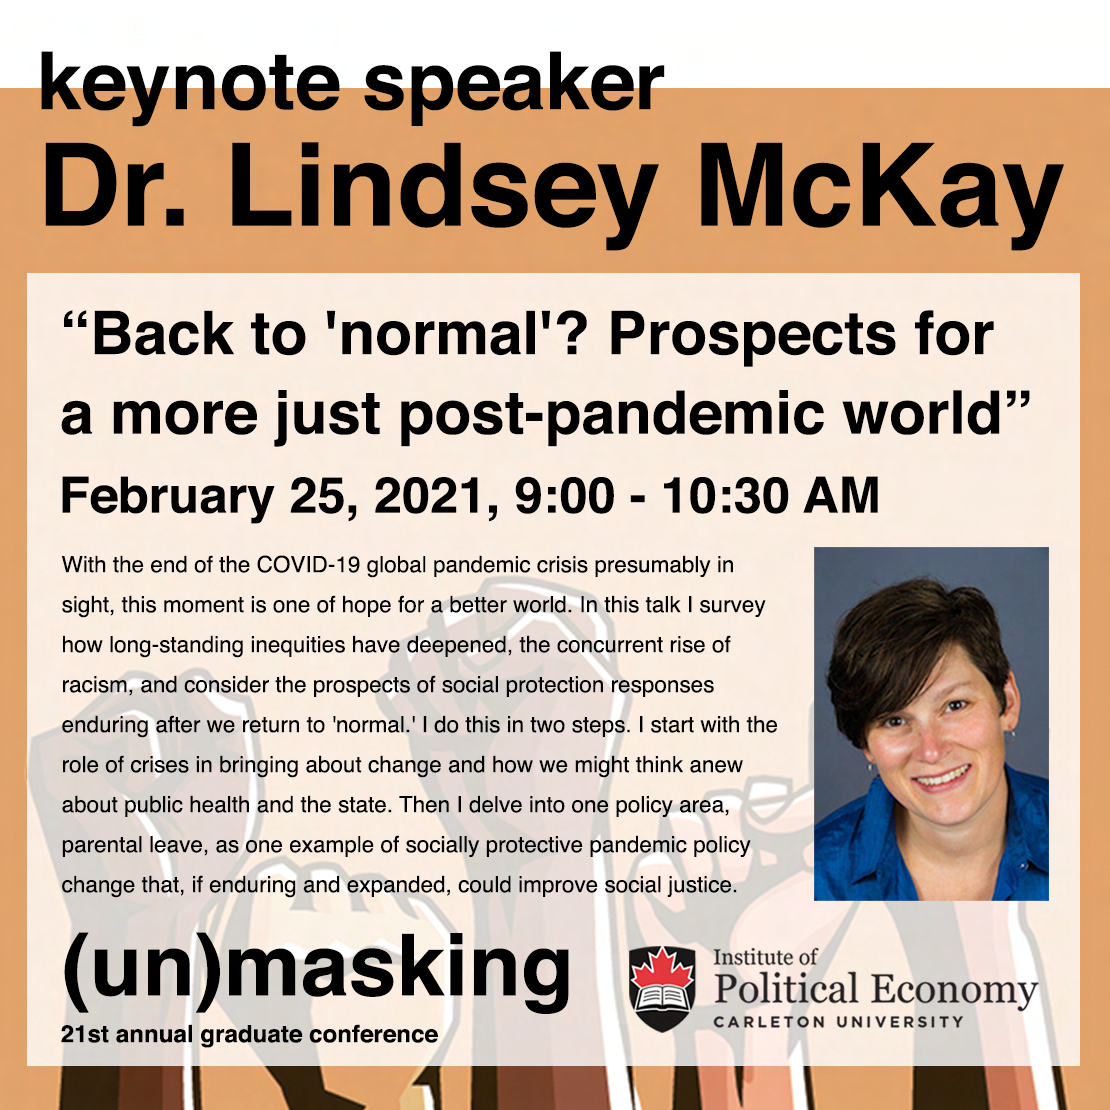 """Photo of Keynote speaker, a white woman with short brown hair and a dark blue button up shirt. Text overlaid the figure of hands punching up in solidarity. orange-beige border. Logo for the Institute of Political Economy. Text describes the keynote's presentation: """"Back to 'normal'? Prospects for a more just post-pandemic world"""" February 25, 2021, 9:00-10:30AM - With the end of the Covid-19 global pandemic crisis presumably in sight, this moment is one of hope for a better world. In this talk I survey how long-standing inequalities have deepened, the concurrent rise of racism, and consider the prospects of social protection responses ensuring after we return to 'normal.' I do this in two steps. I start with the role of crises in bringing about change and how we might think anew about public health and the state. Then I delve into one policy area, parental leave, as one example of socially protective pandemic policy change that, if enduring and expanded, could improve social justice."""""""